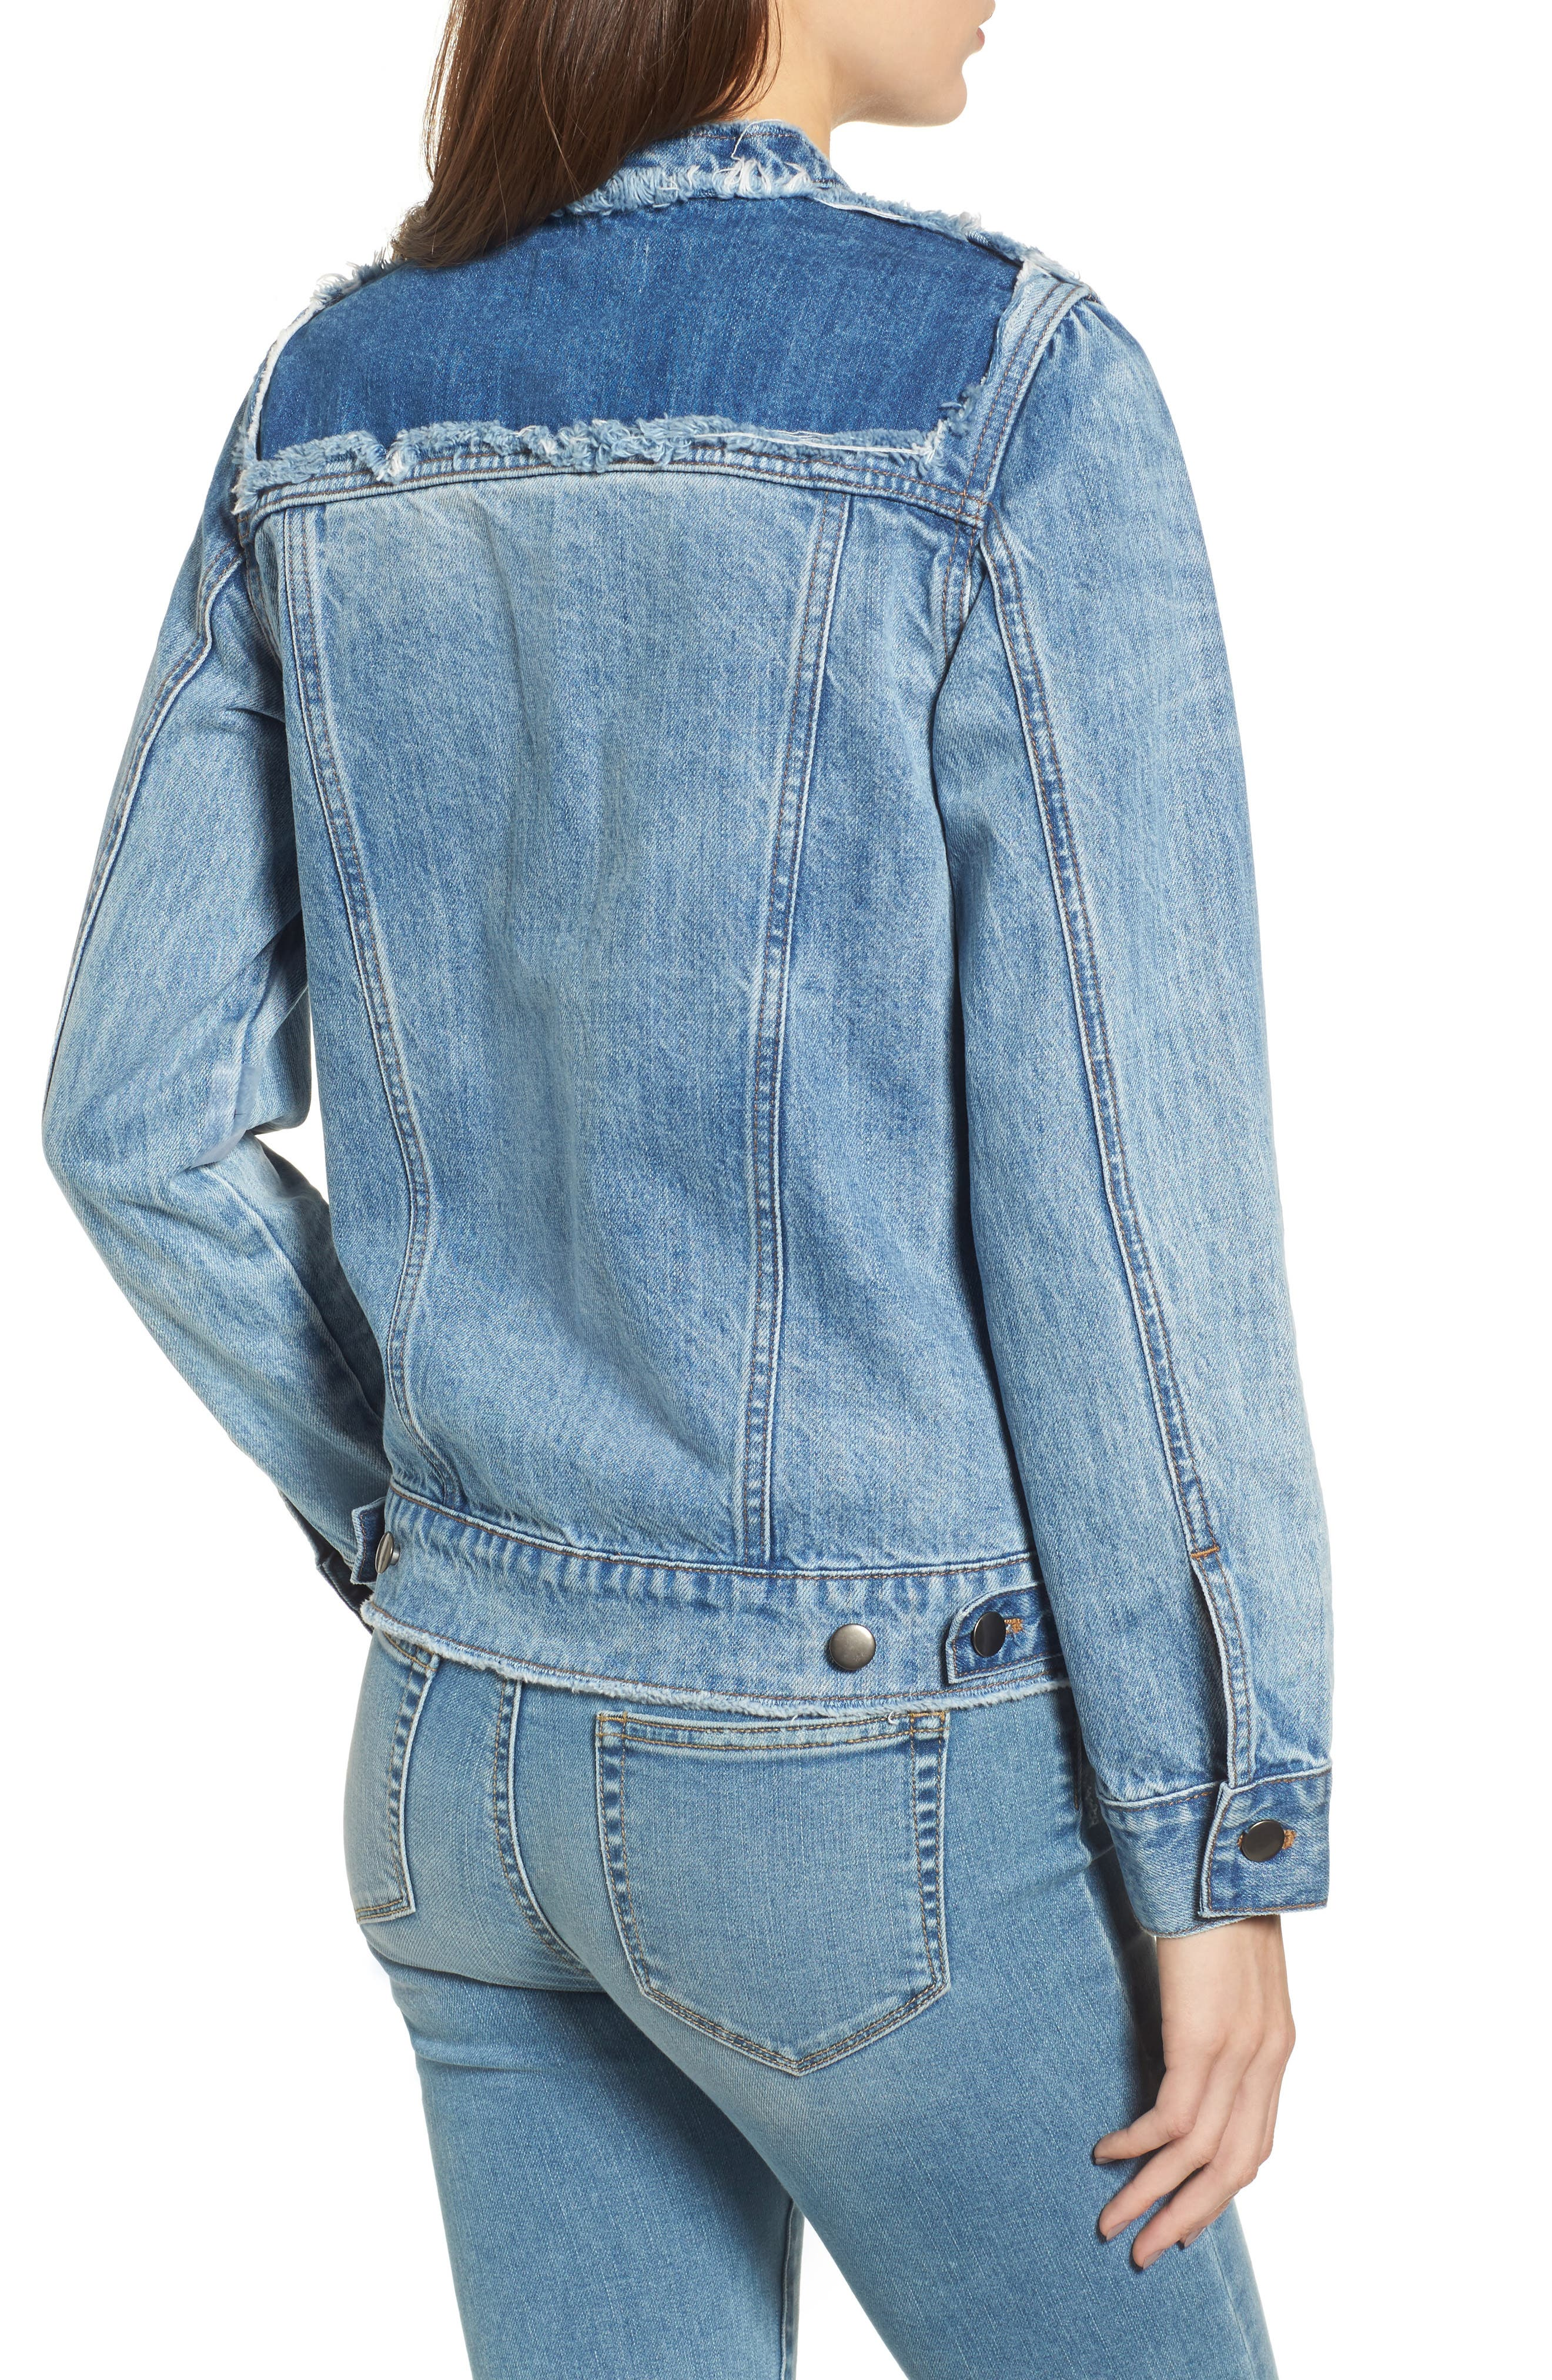 Bastille Jean Jacket,                             Alternate thumbnail 2, color,                             401